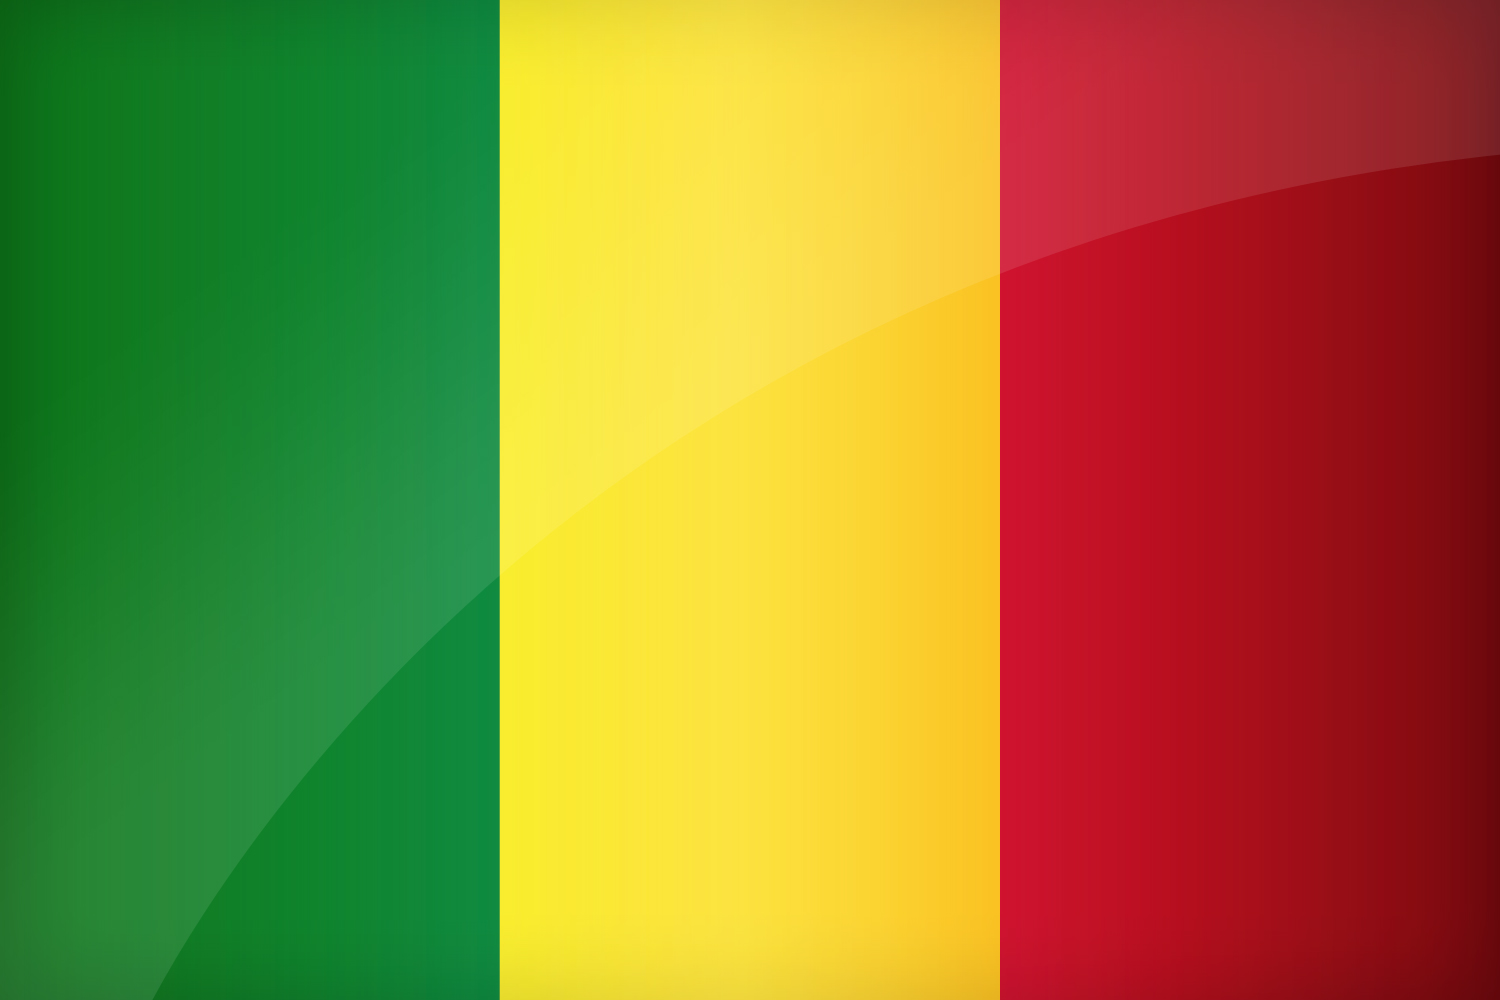 Malian Flags (Mali) from The World Flag Database